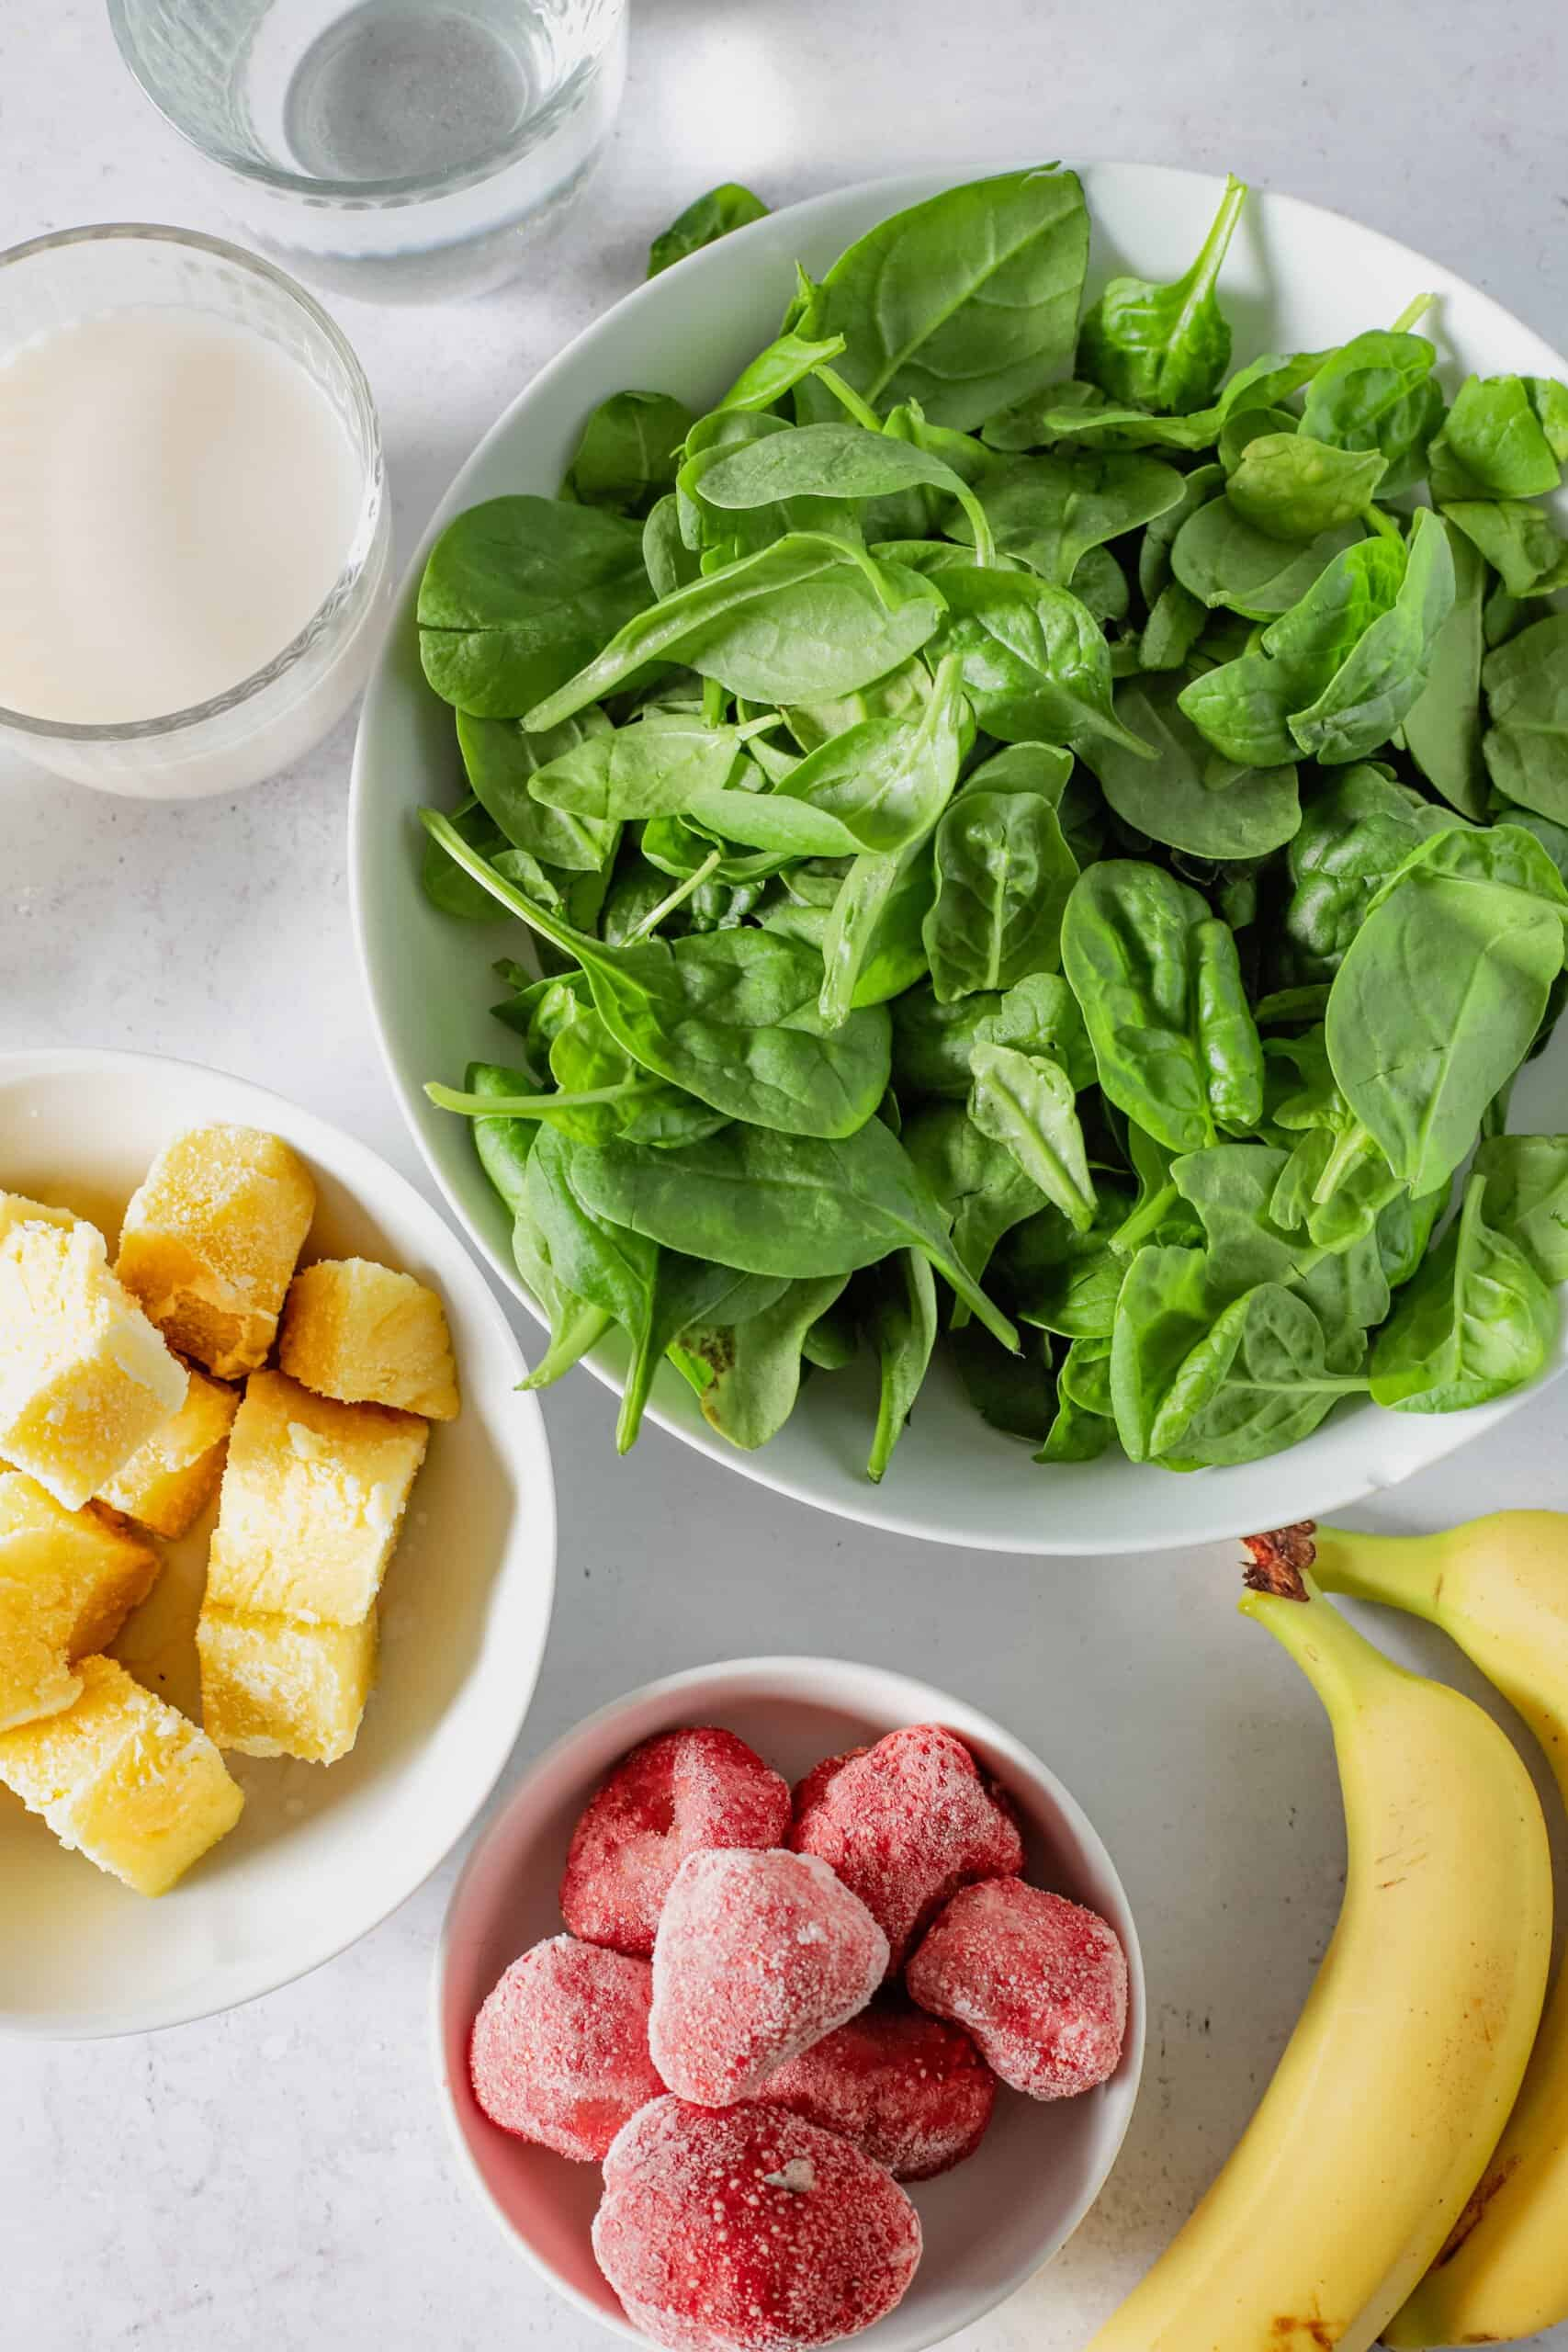 ingredients for tropical green smoothie